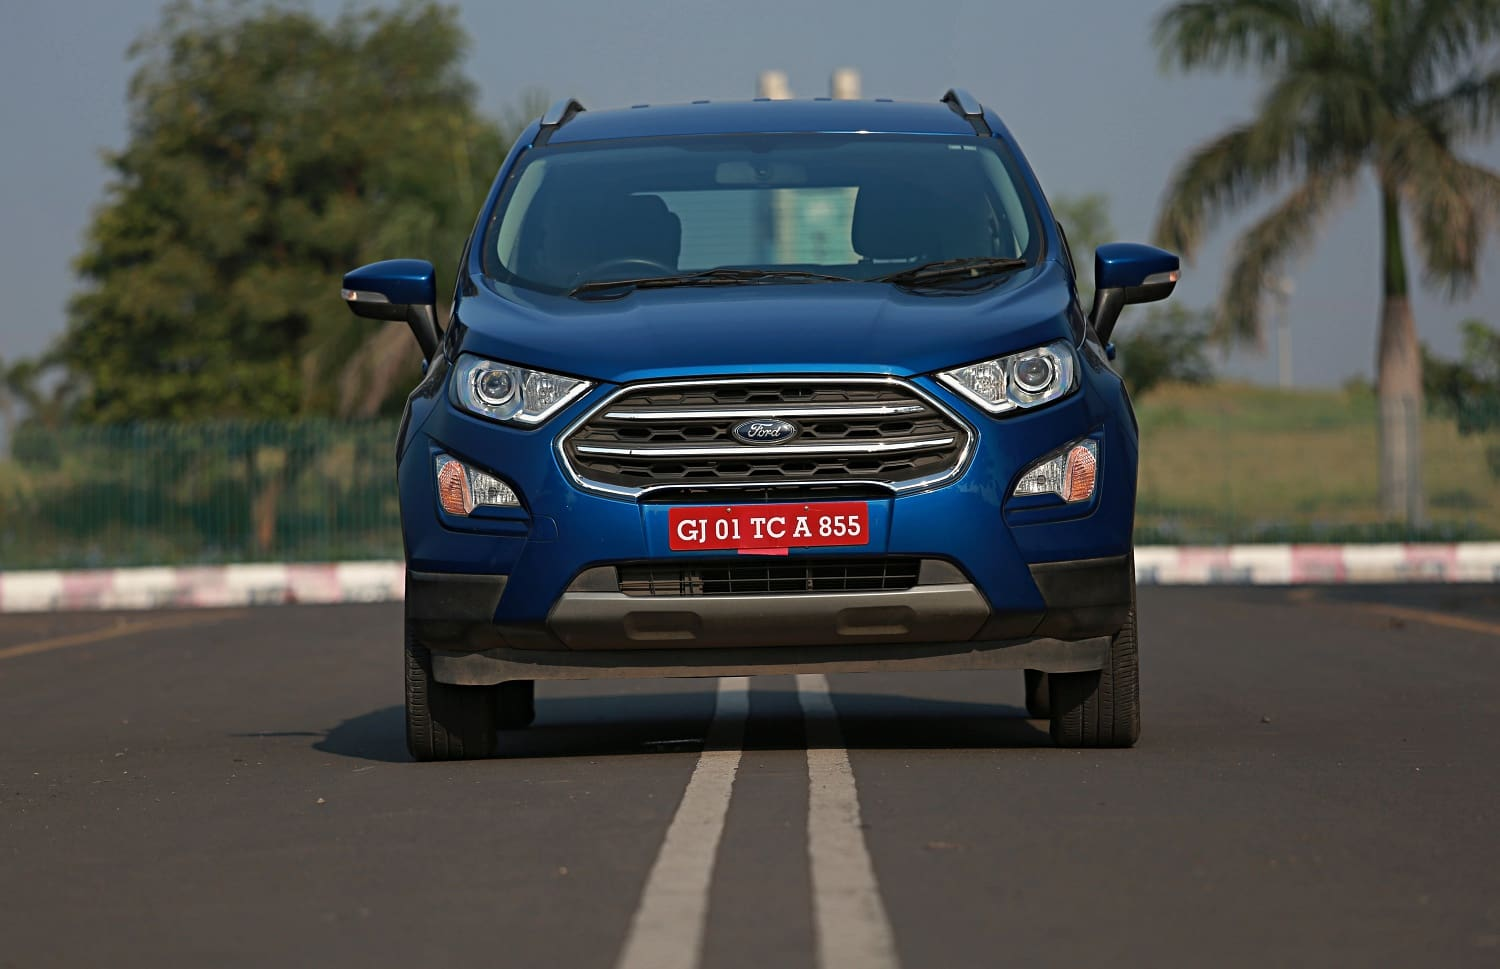 Ford February 2019 Offers On Freestyle, Aspire, EcoSport: Buy Now, Pay Later